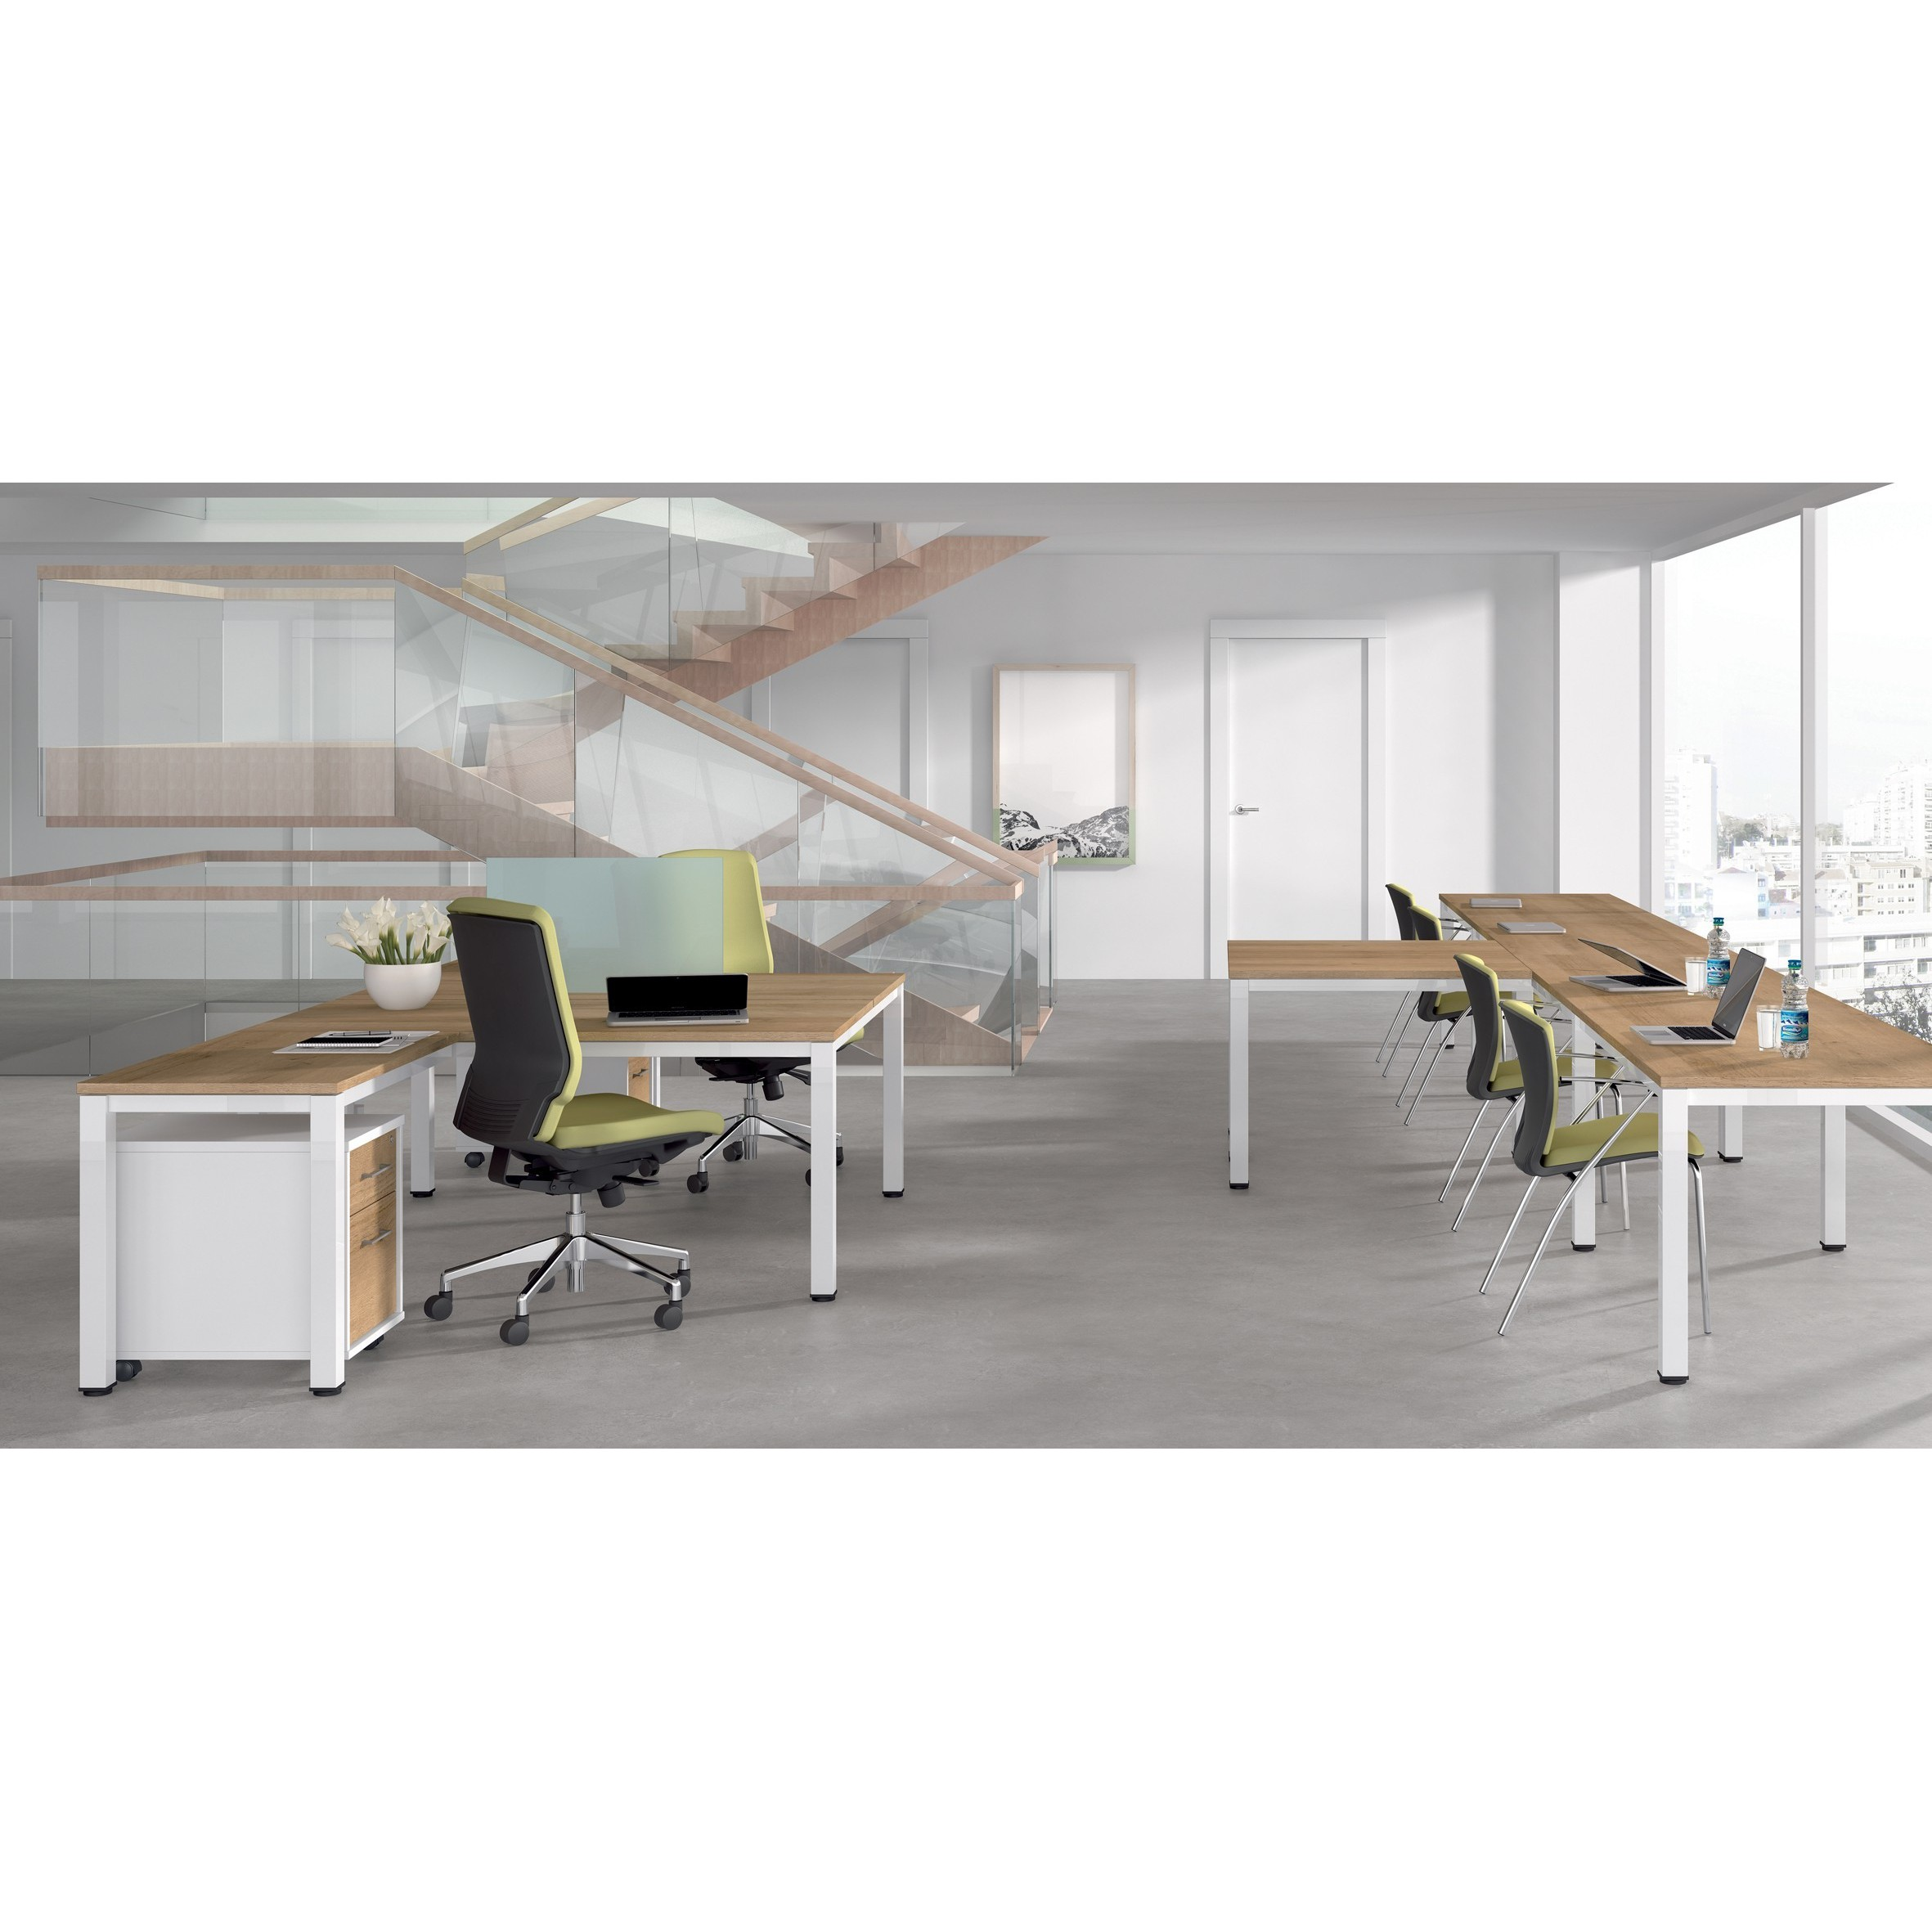 TABLE OFFICE 'S EXECUTIVE SERIES 160X80 WHITE/GREY